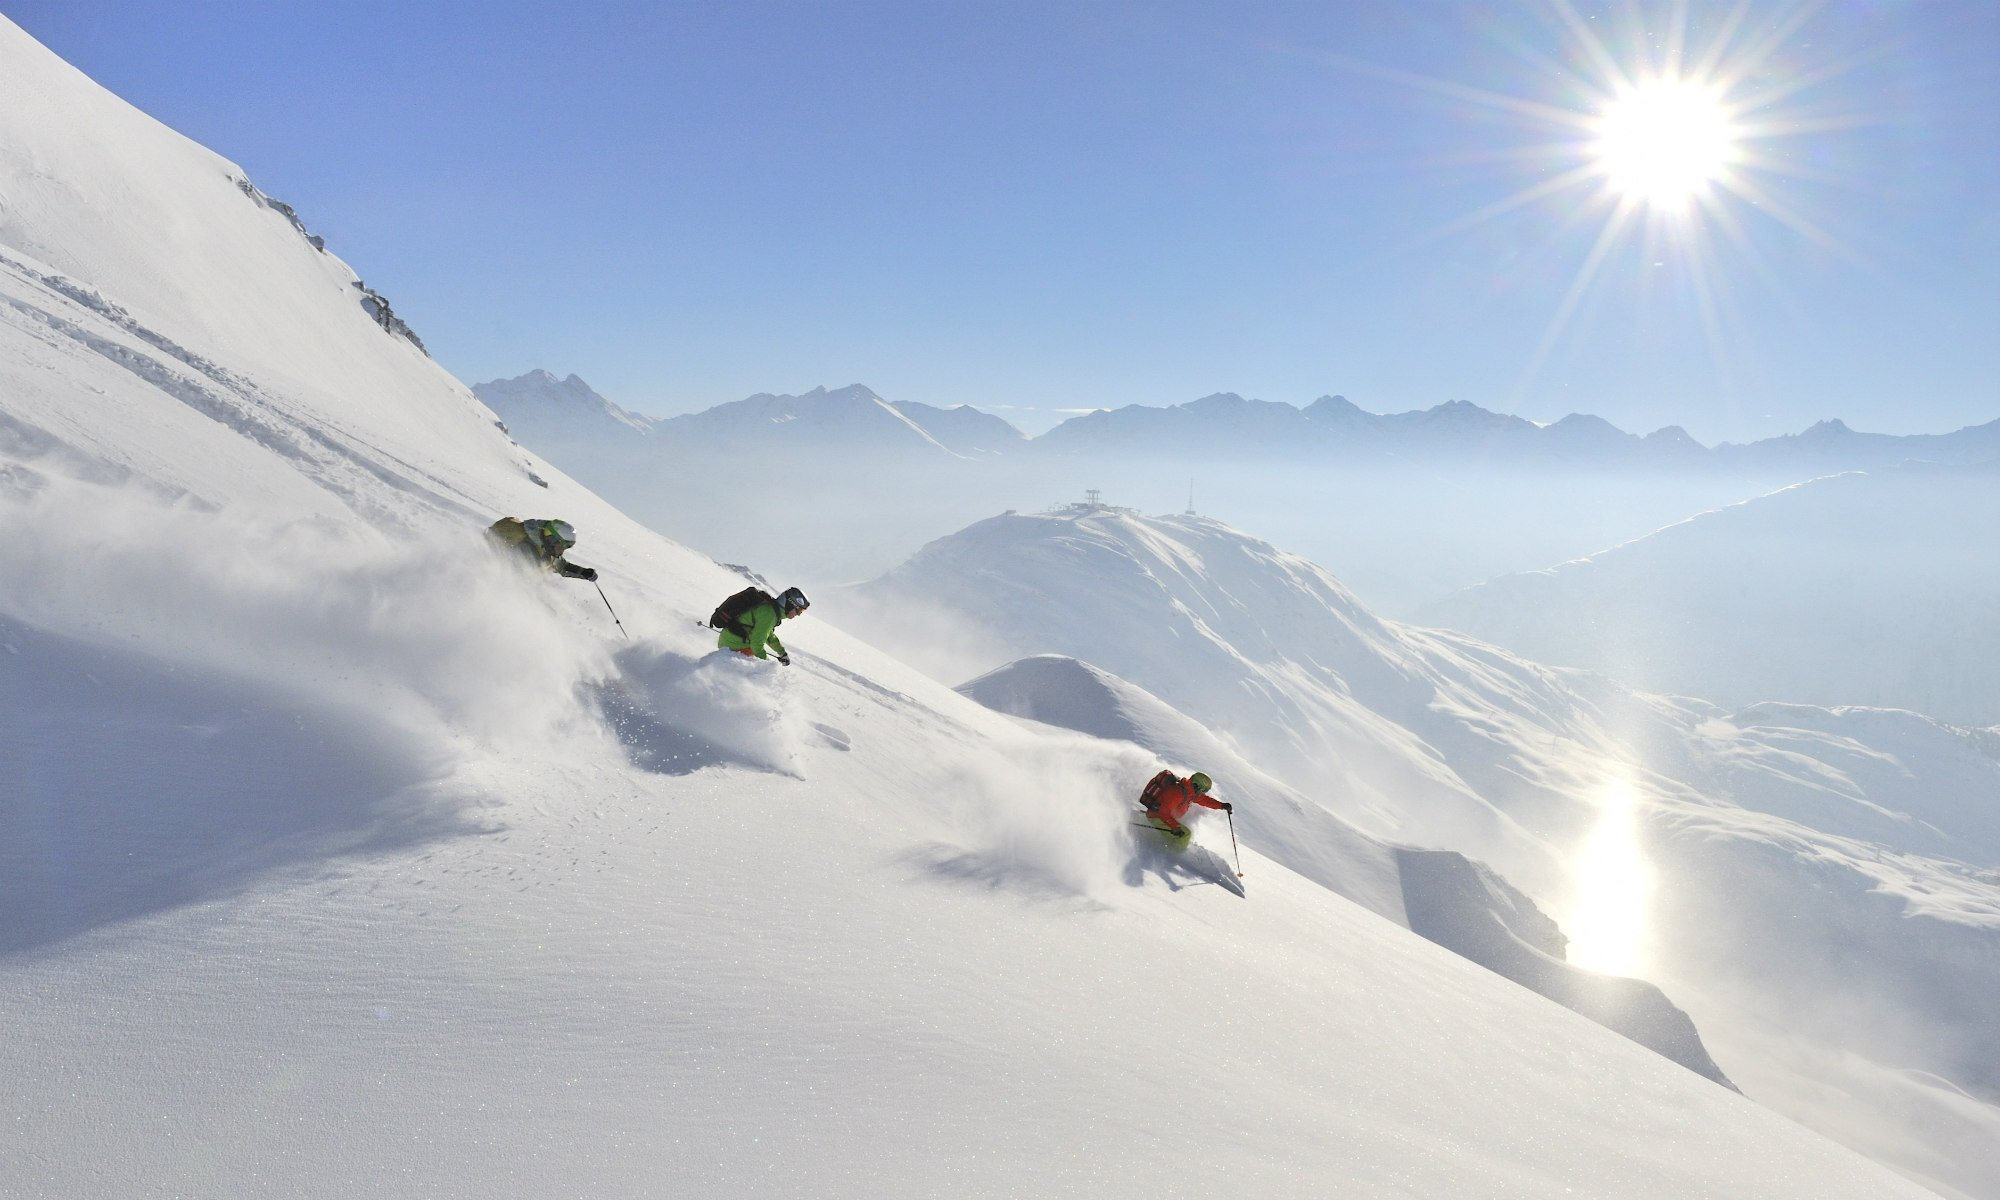 Three freestyle skiers on powder snow in St. Anton.